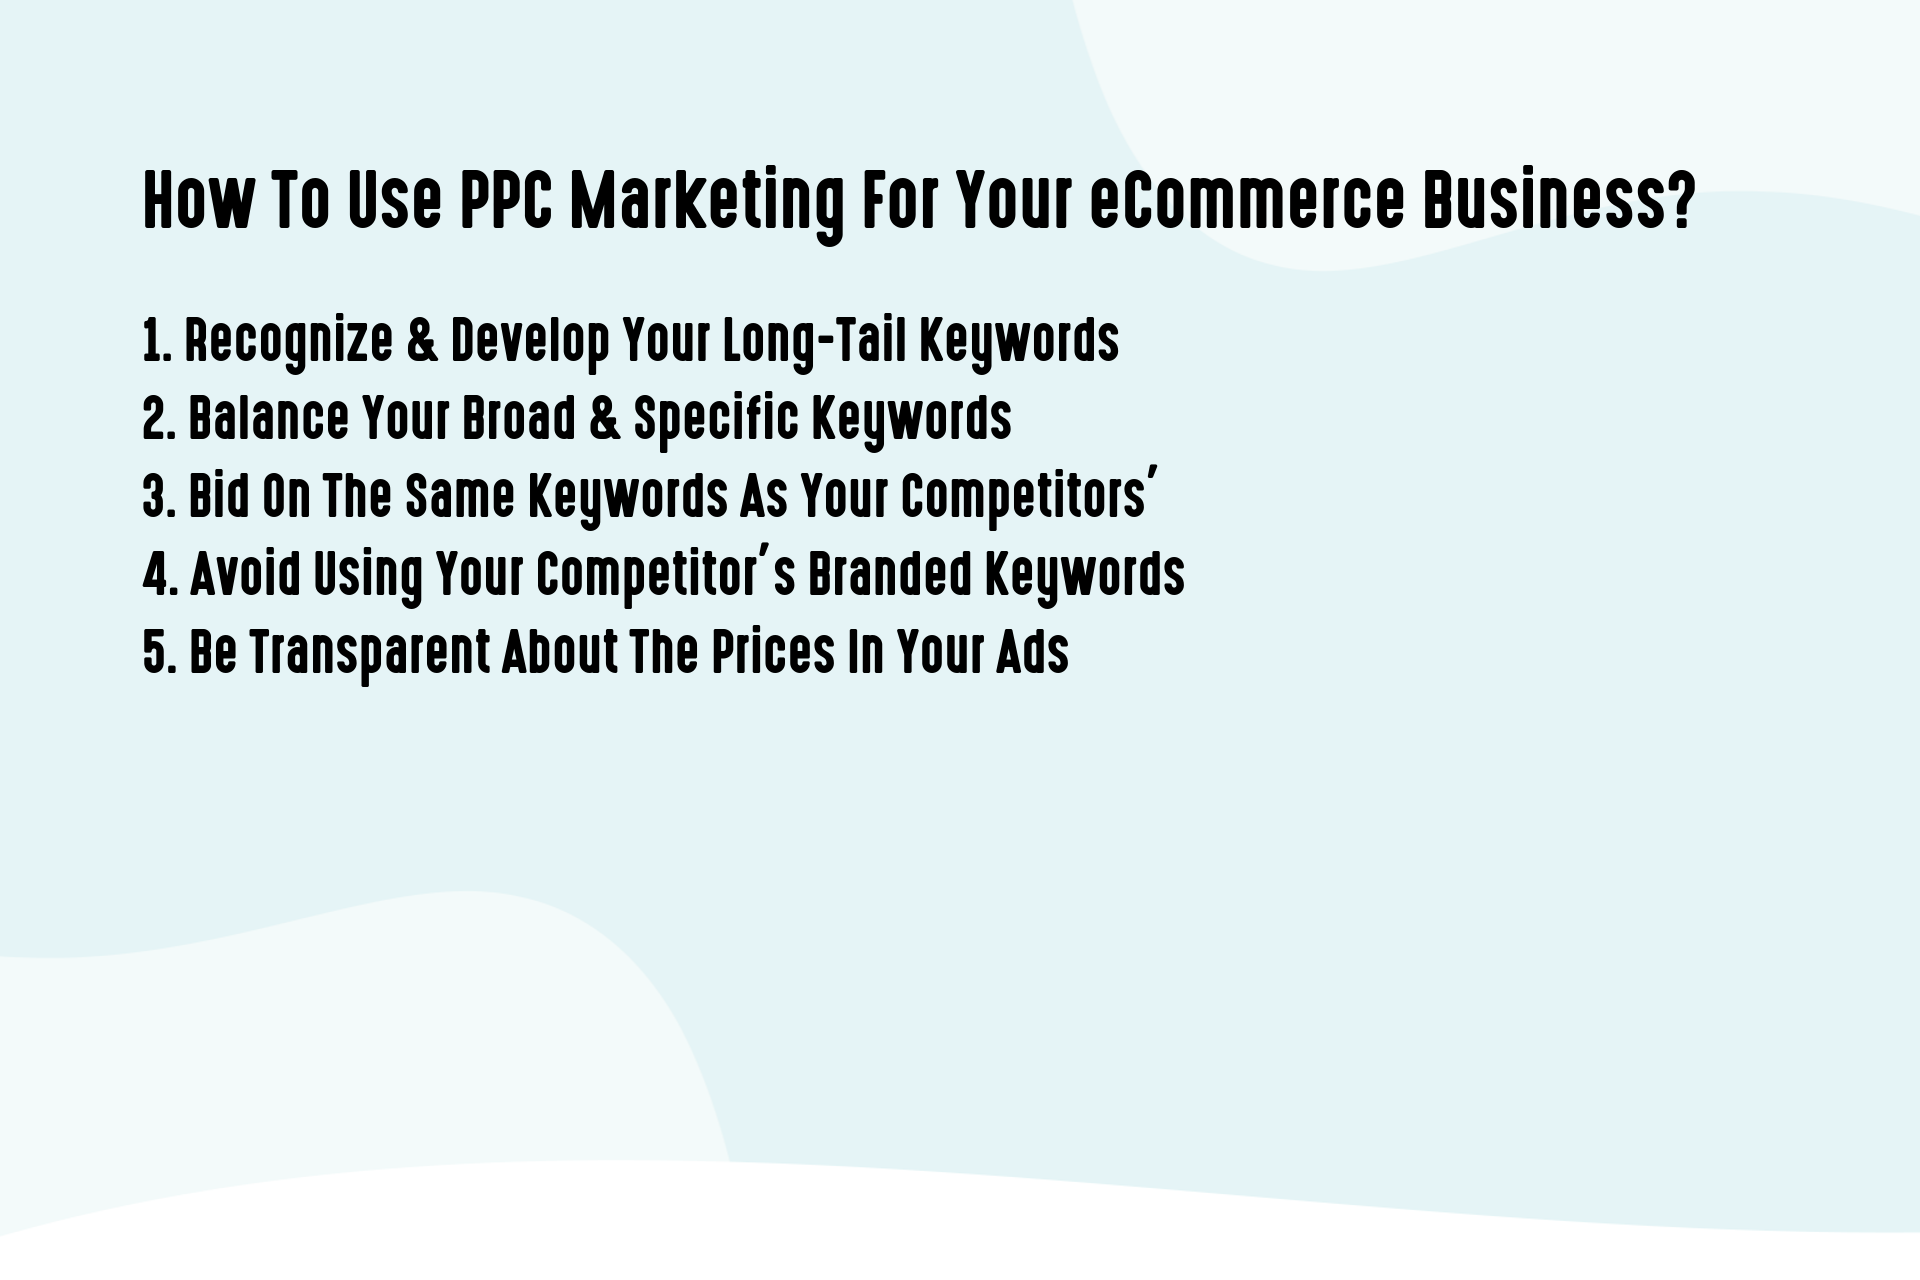 How To Use PPC Marketing For Your eCommerce Business_